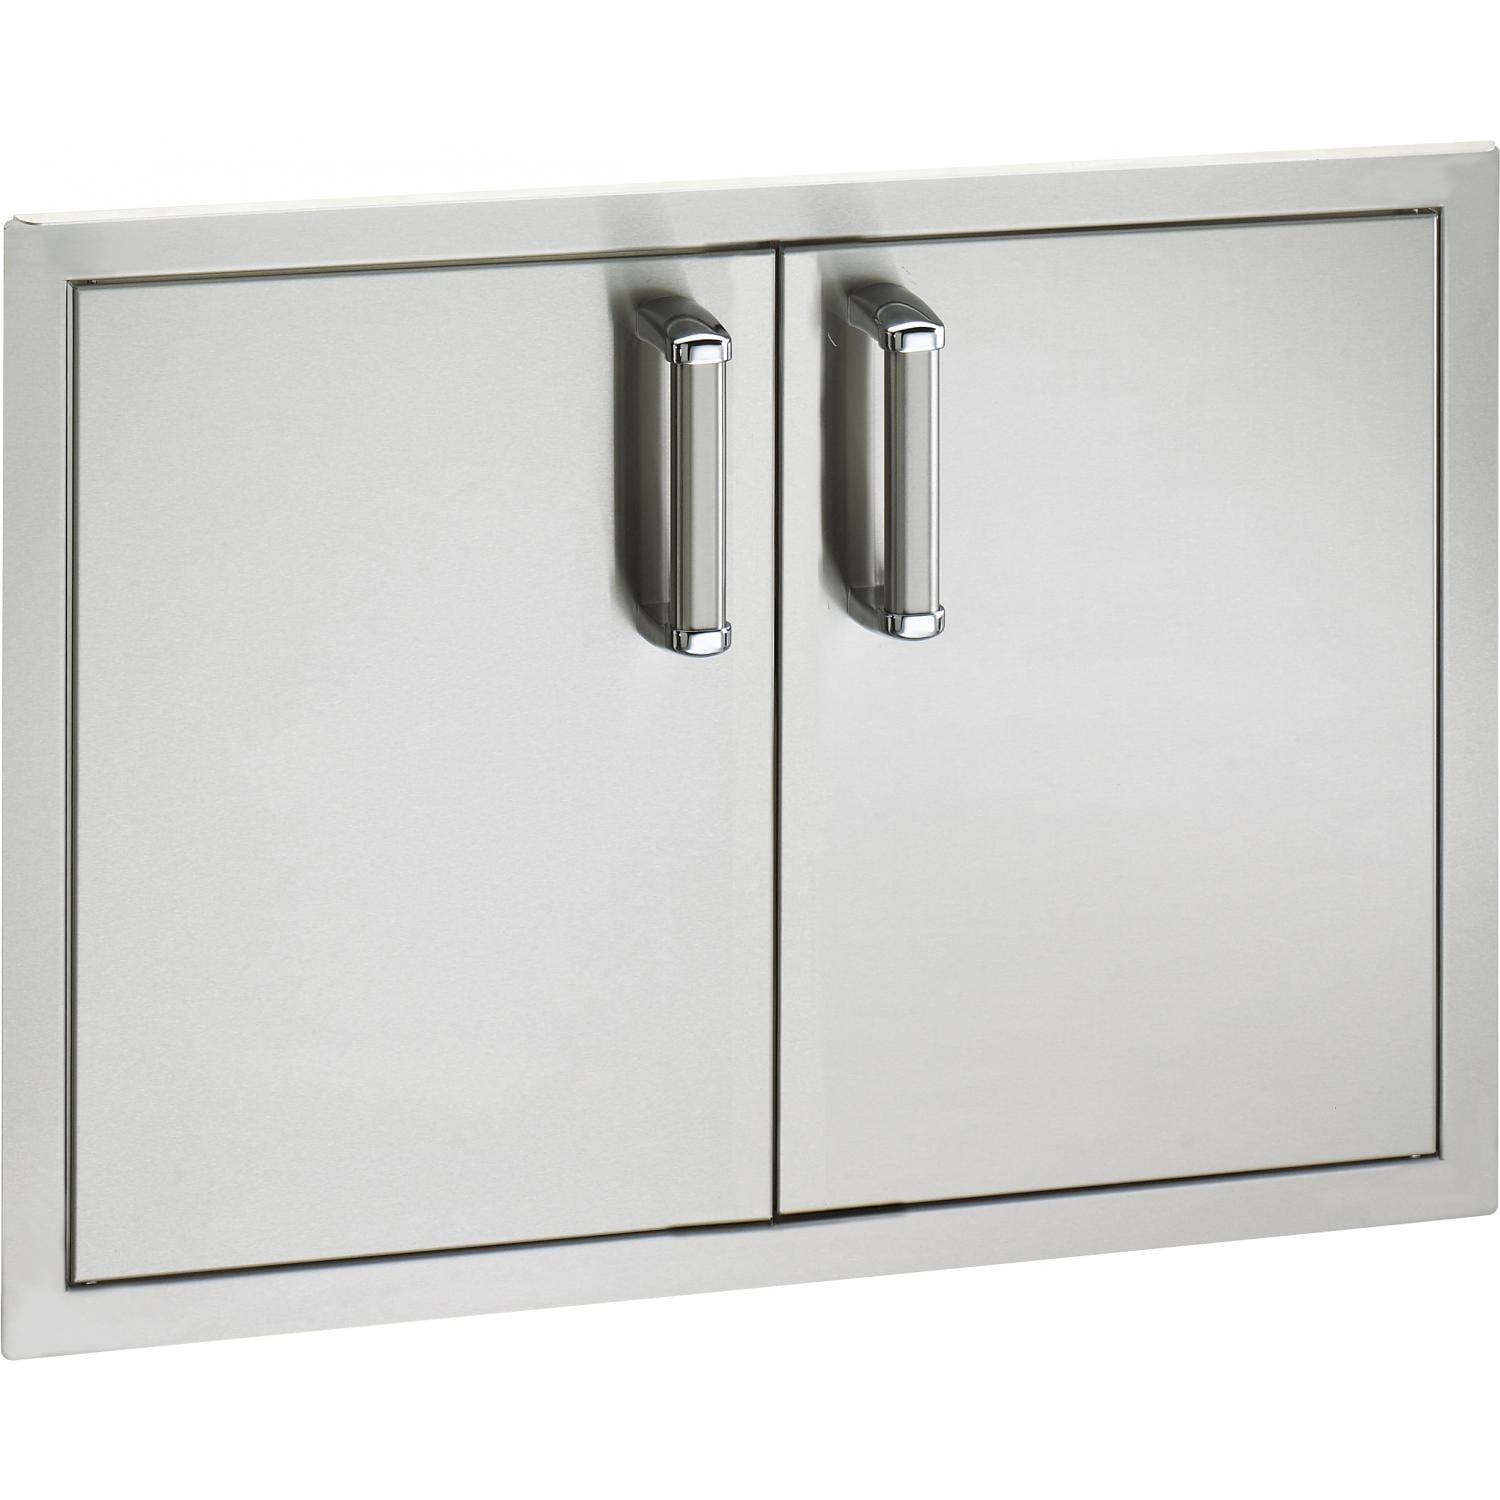 Fire Magic Flush 30 X 20-Inch Double Access Door